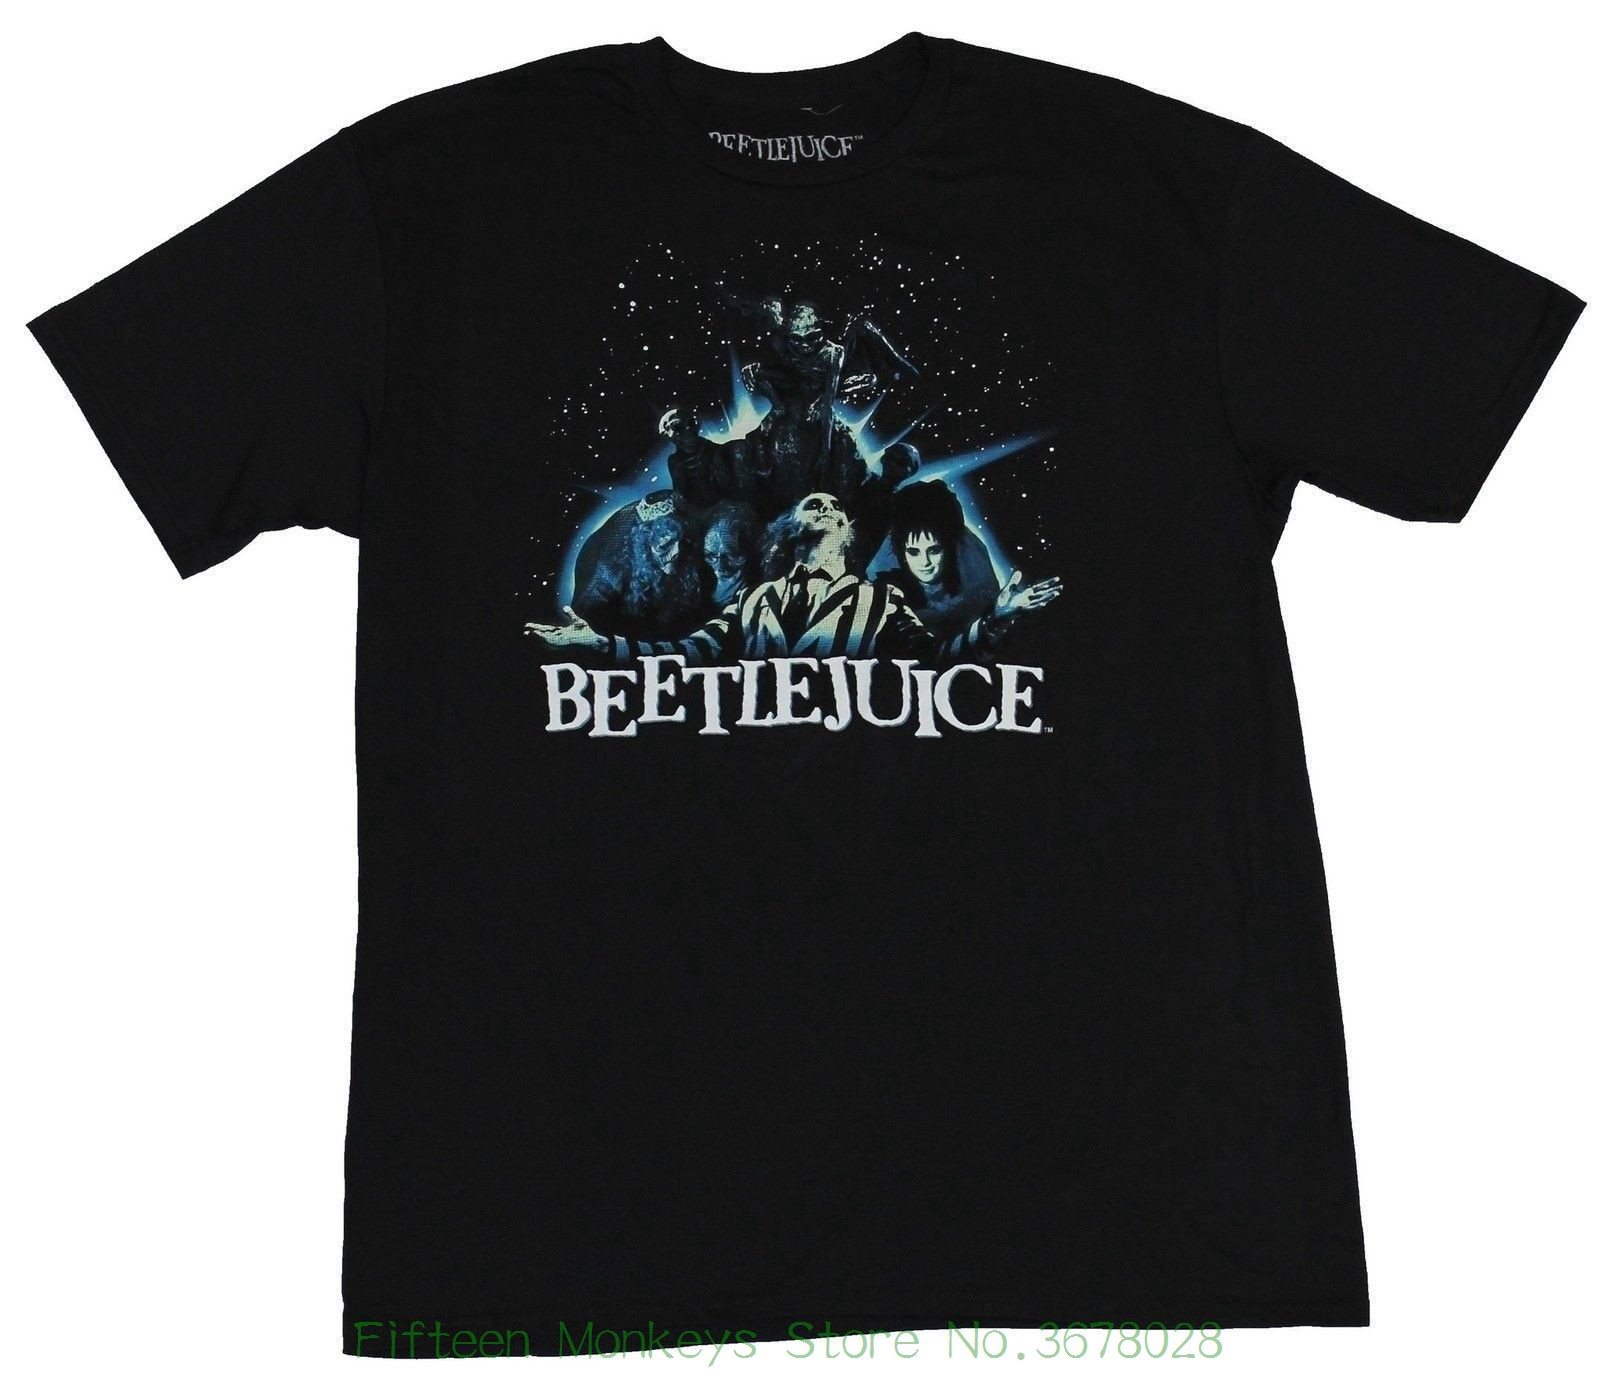 Top Quality T Shirts Men O Neck Beetlejuice Mens T-shirt - Open Arms Spacey Group Shot Image